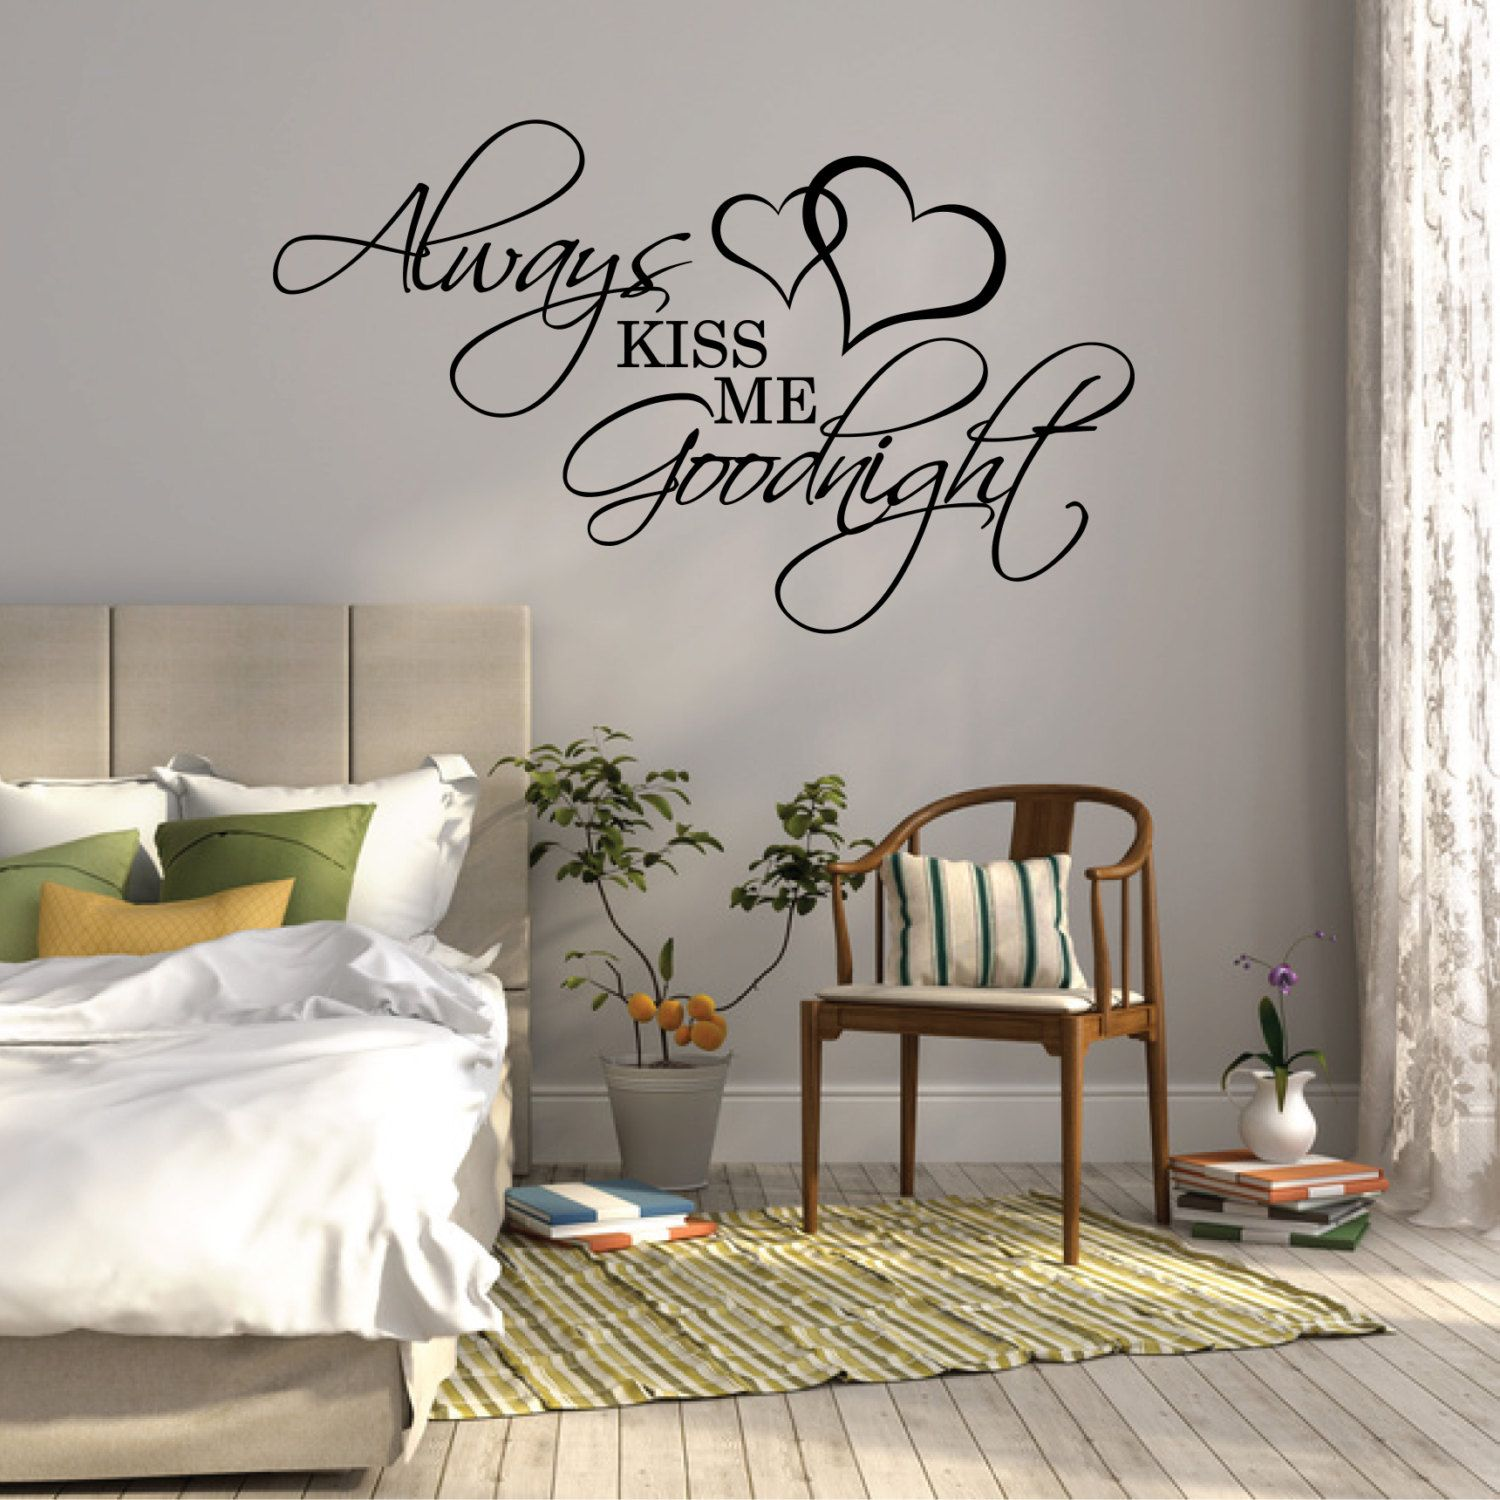 Wall sticker quote always kiss me goodnight over bed for Best quotes for wall art